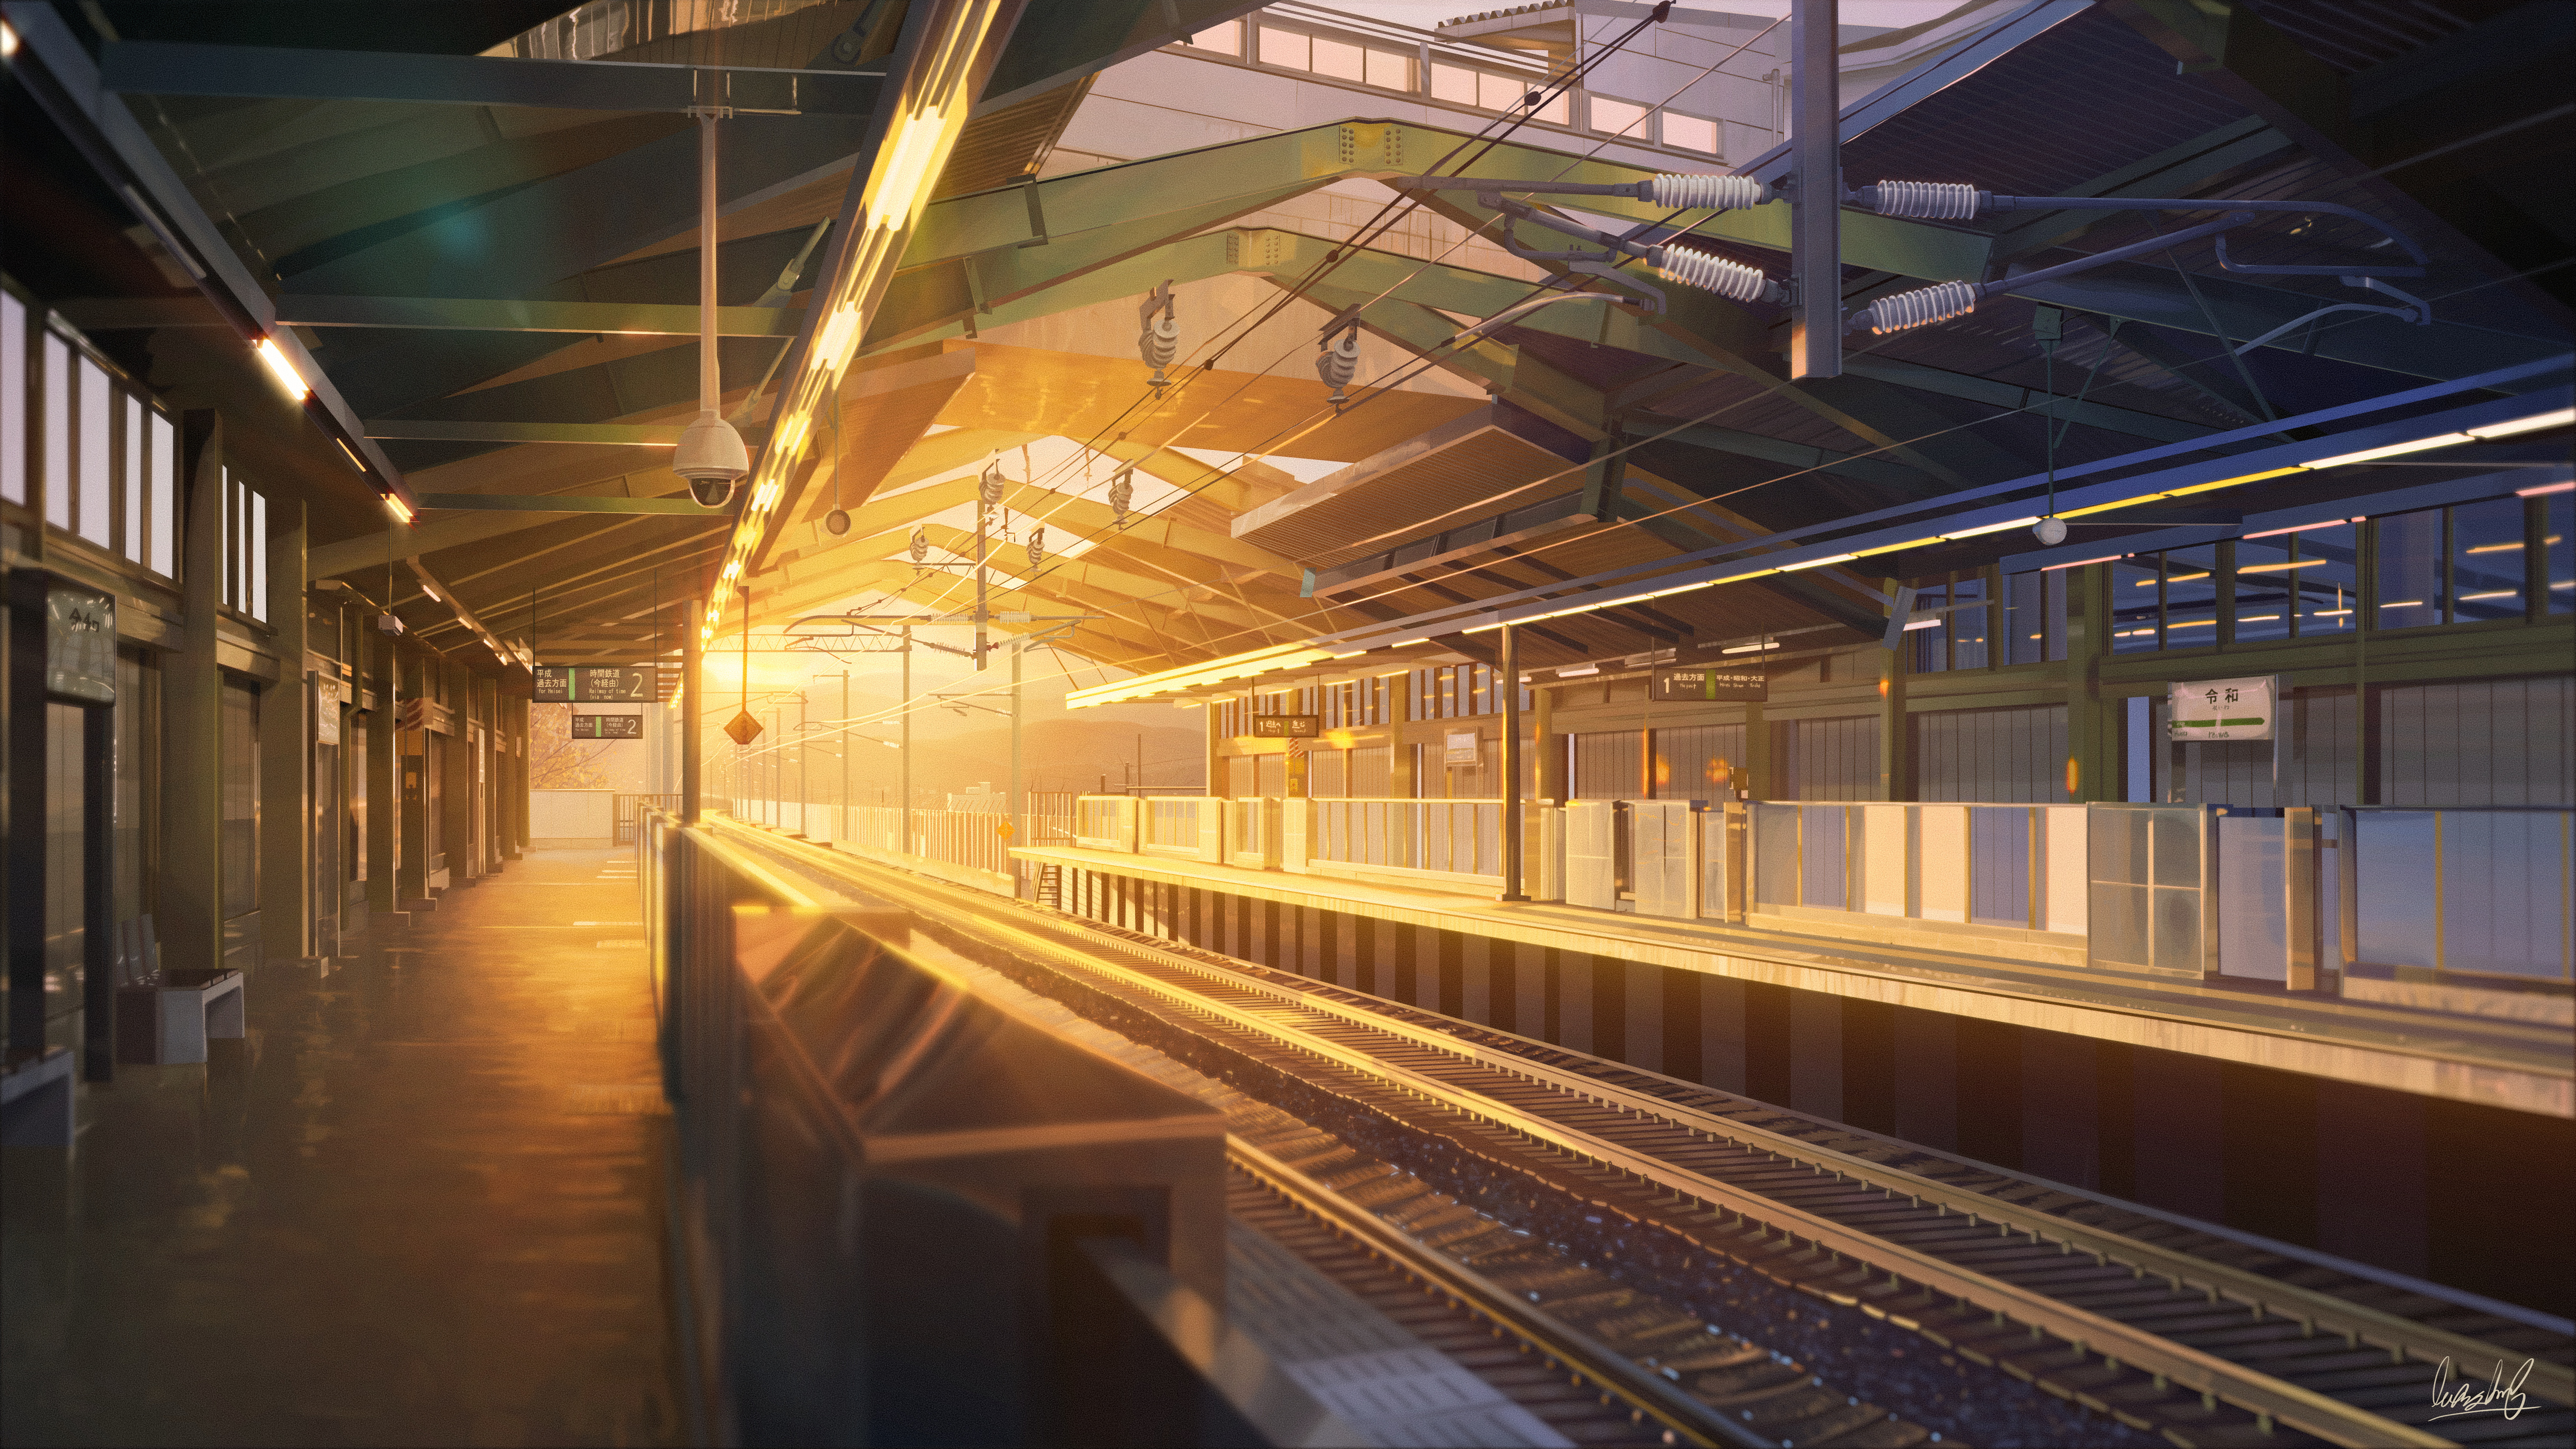 train-station-anime-5k-jf.jpg